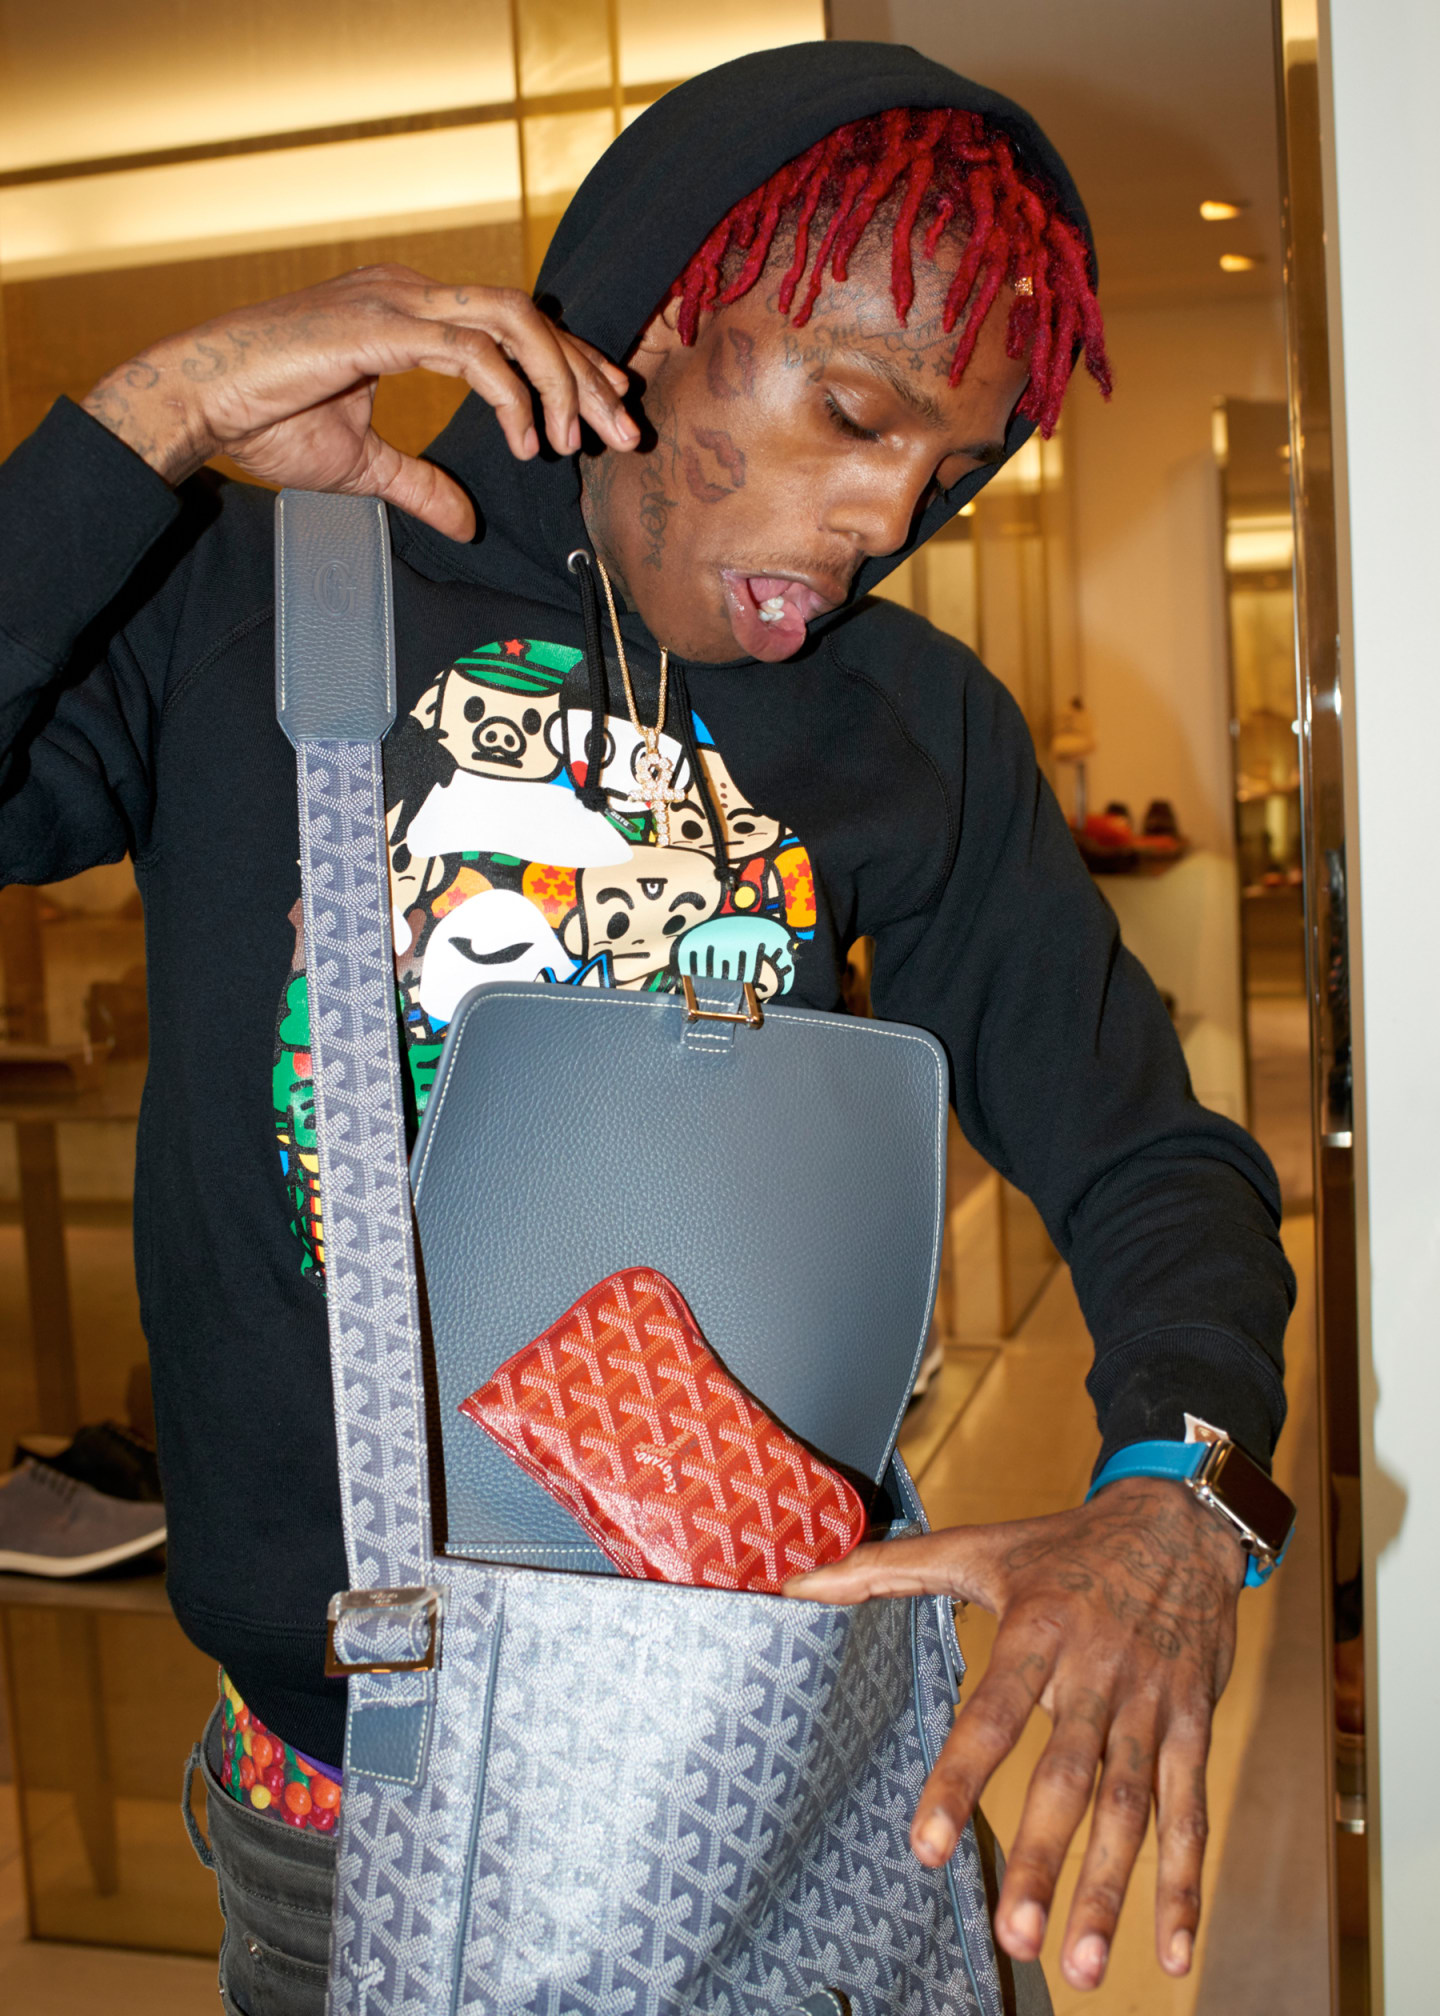 Famous Dex Has A Lot Of Energy The Fader